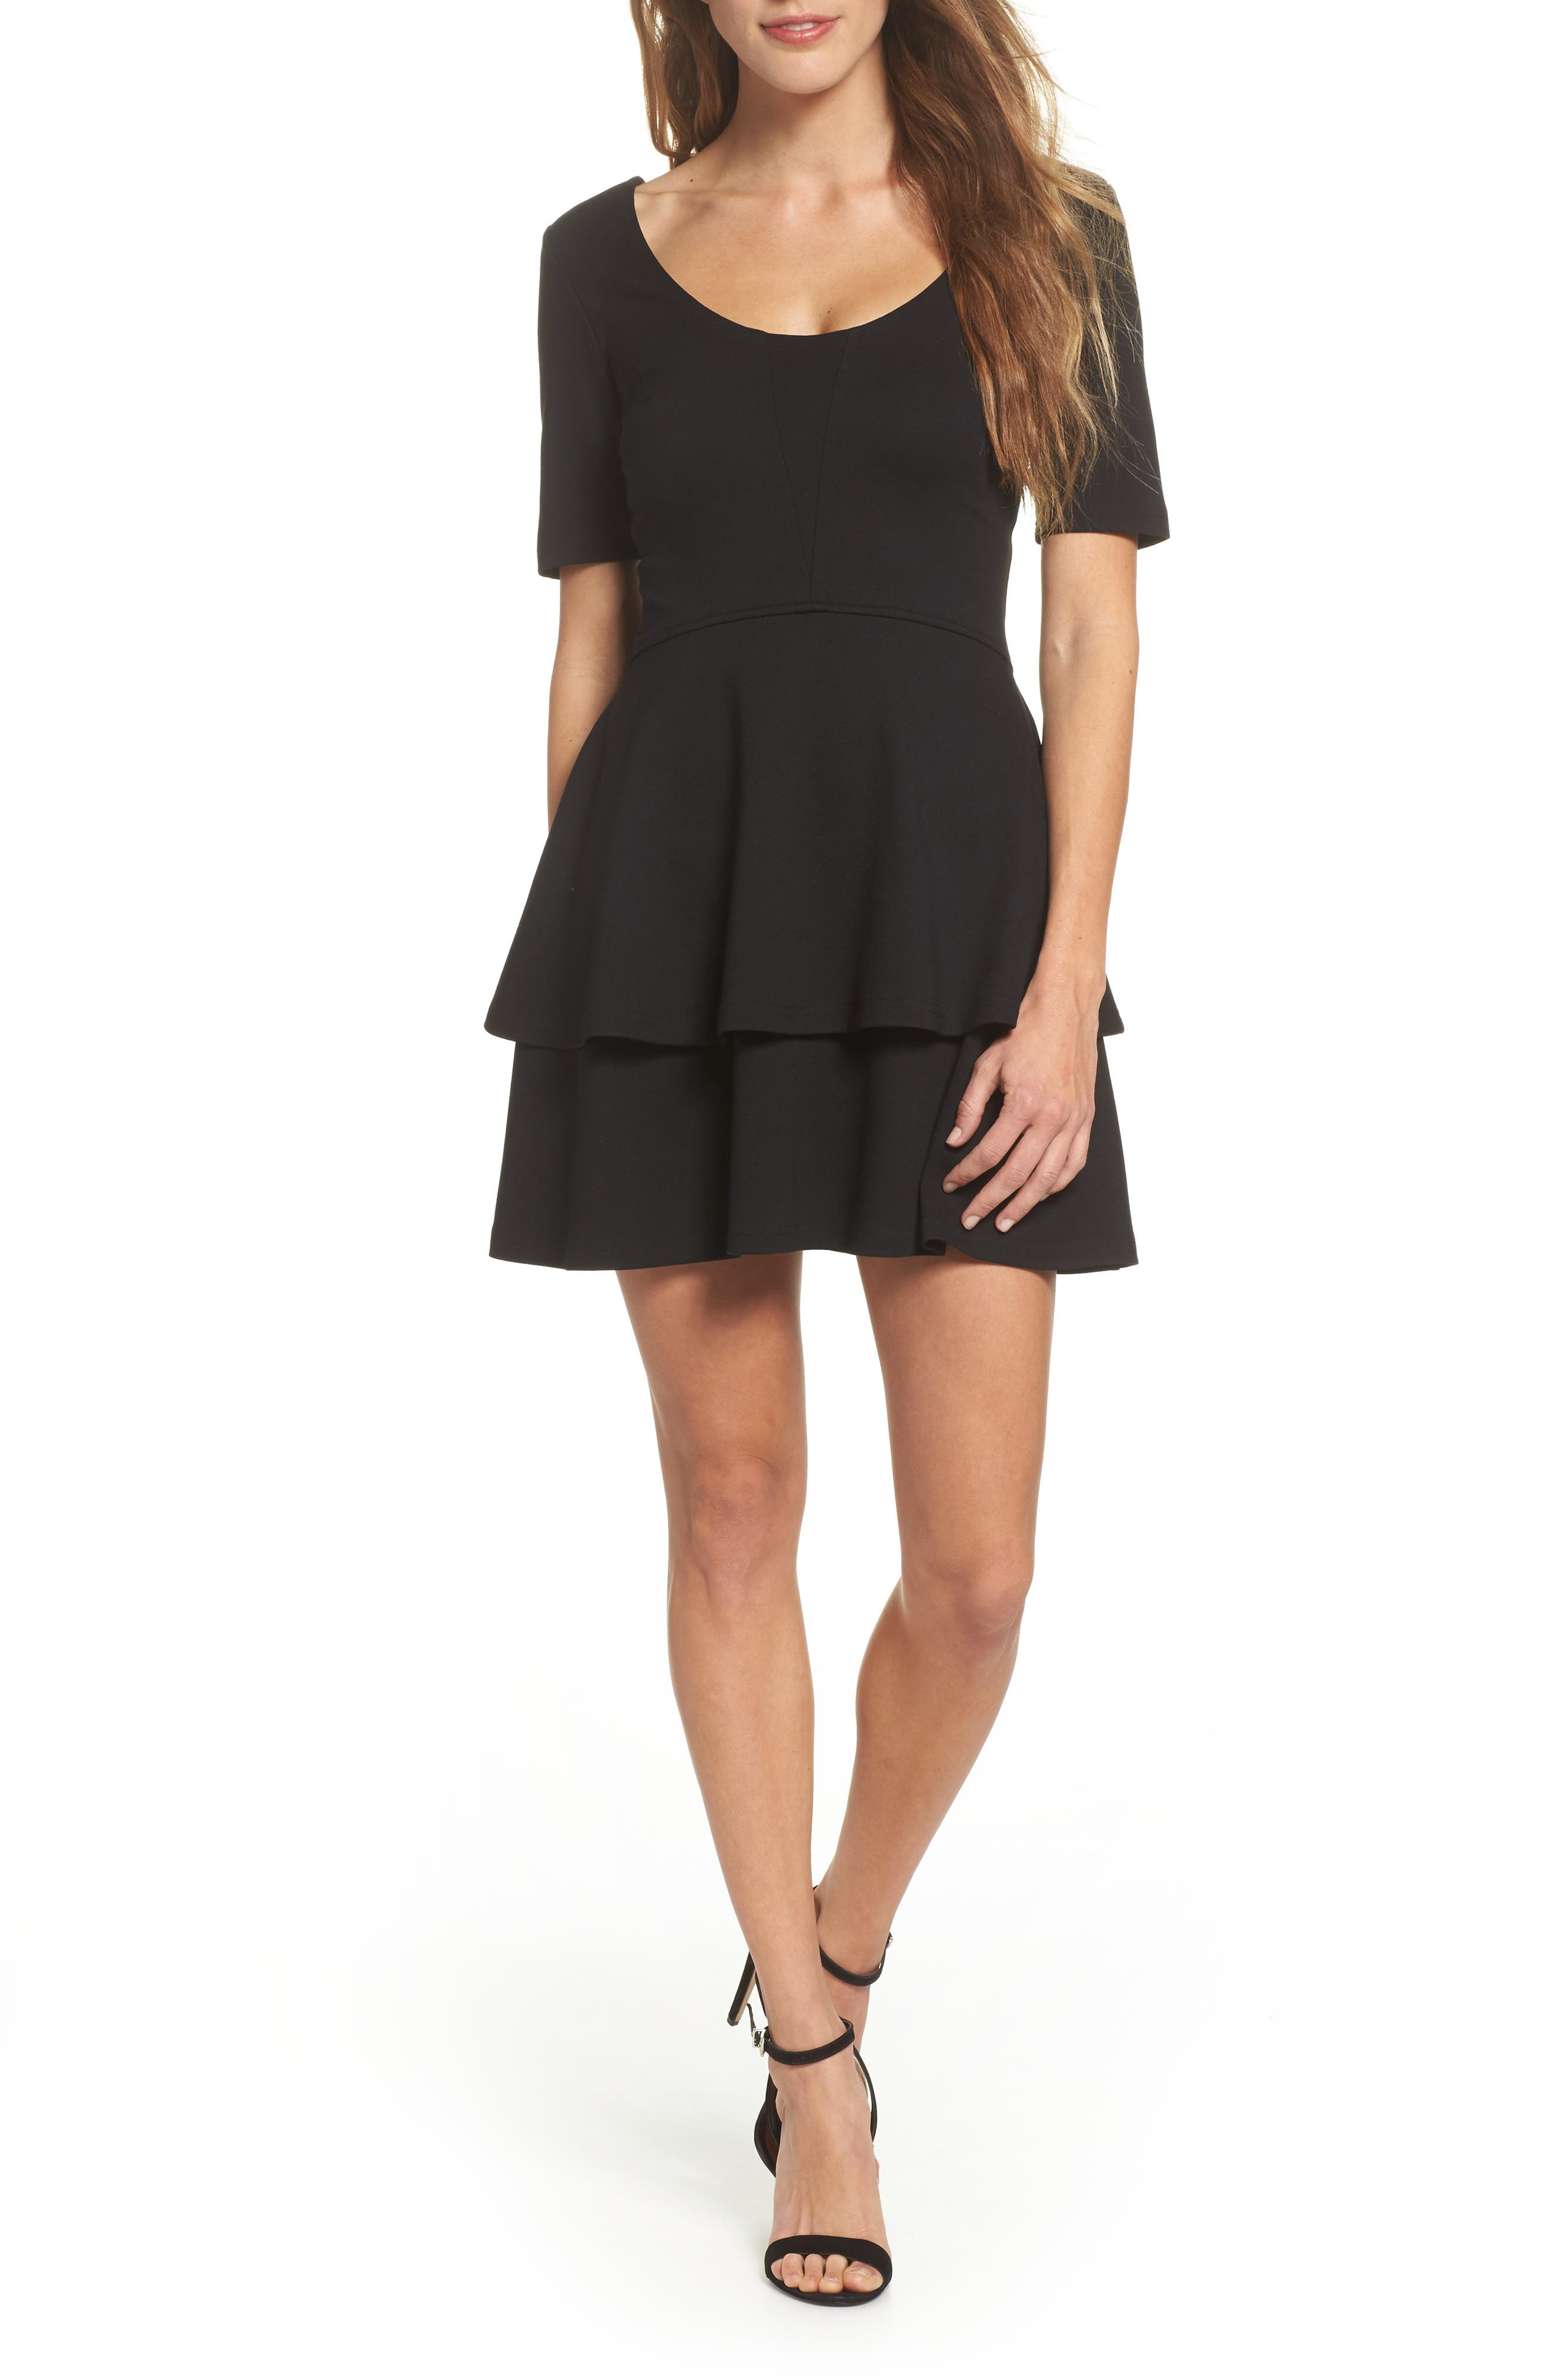 Isn't It Sweet Fit & Flare Dress,                             Main thumbnail 1, color,                             Black